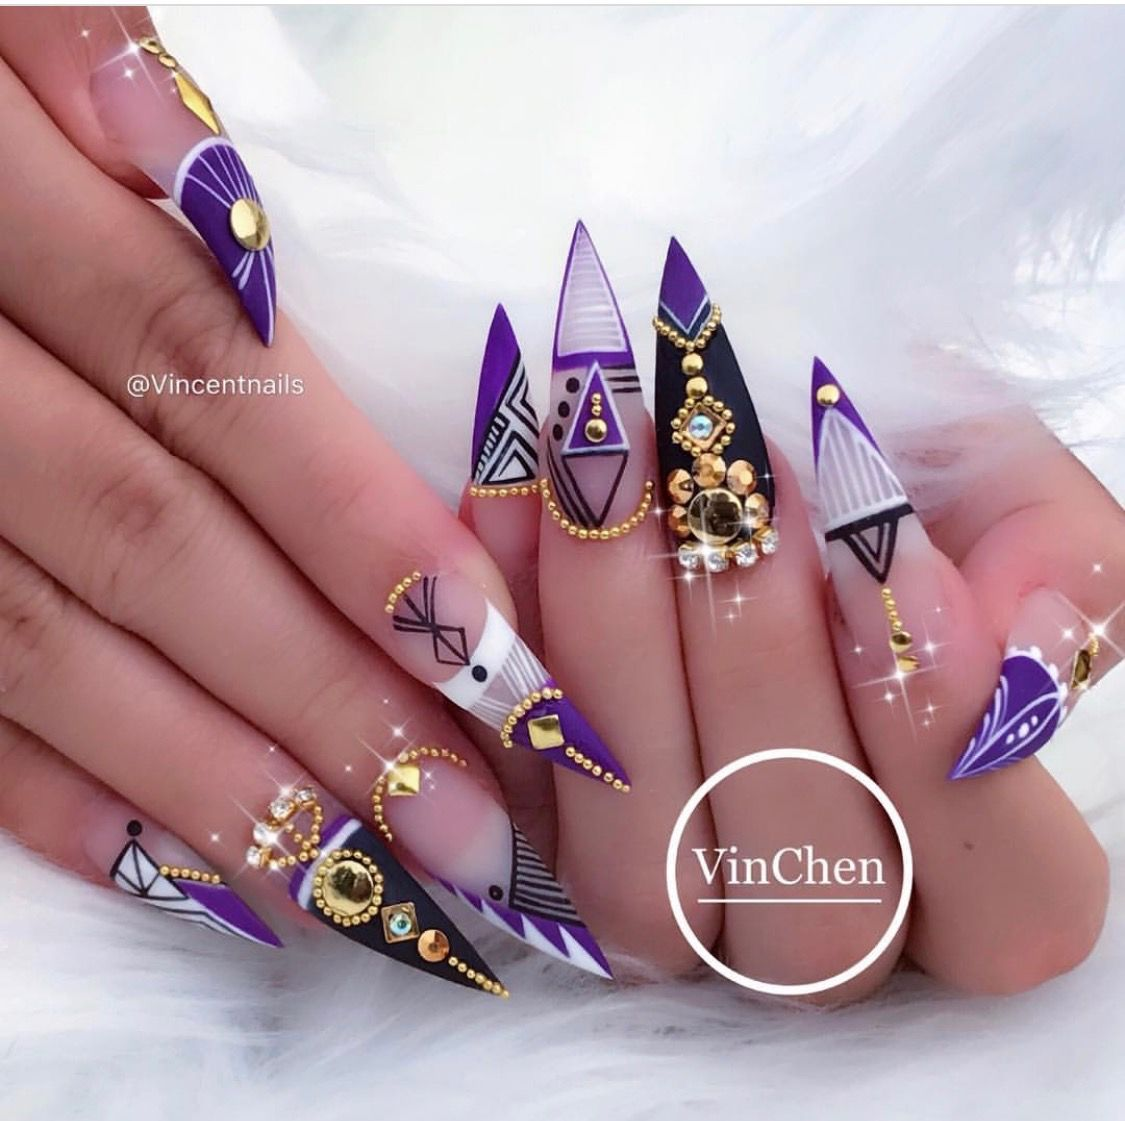 QueenKatalina | Nail Designs | Pinterest | Nail nail, Make up and ...